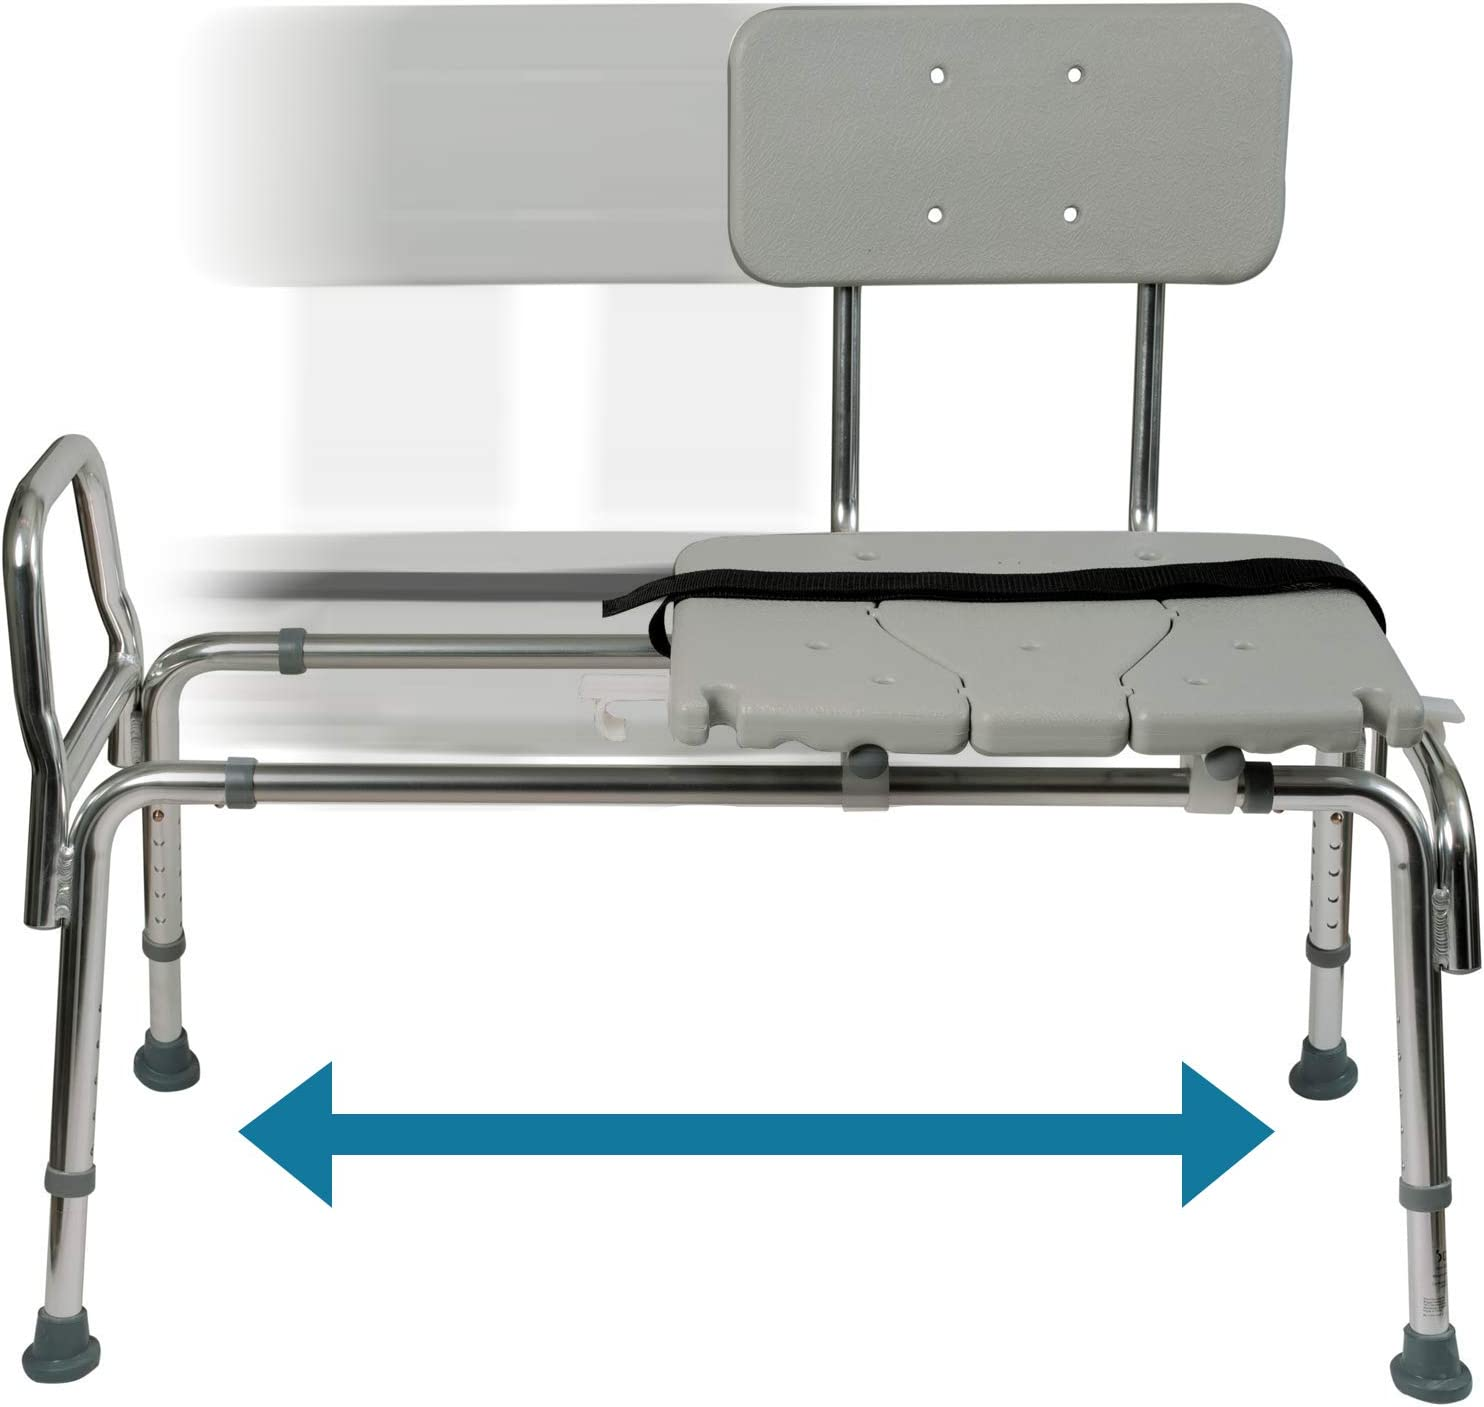 Tub Transfer Bench and Sliding Shower Chair Made of Heavy Duty Non Slip Aluminum Body and Seat with Adjustable Seat Height and Cut Out Access Holding Weight Capacity up to 400 lbs, Gray: Health & Personal Care